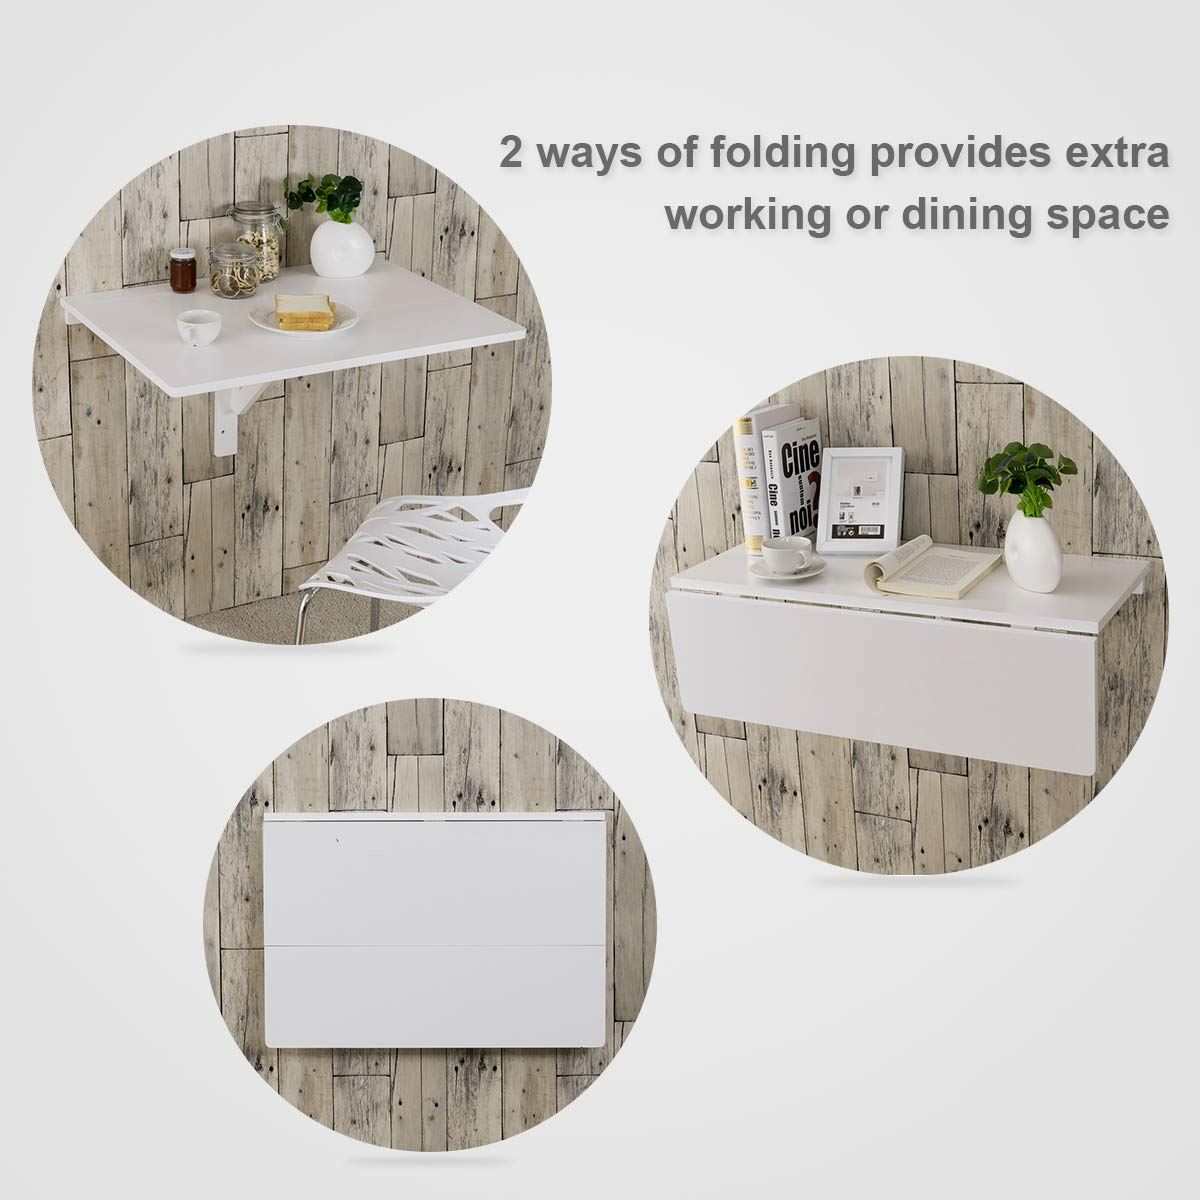 COSTWAY Wall-mounted Drop-leaf Table Space Saving Hanging Table for Study Capacity 20KG 80x60CM Bedroom or Balcony Bathroom Folding Floating Laptop Desk